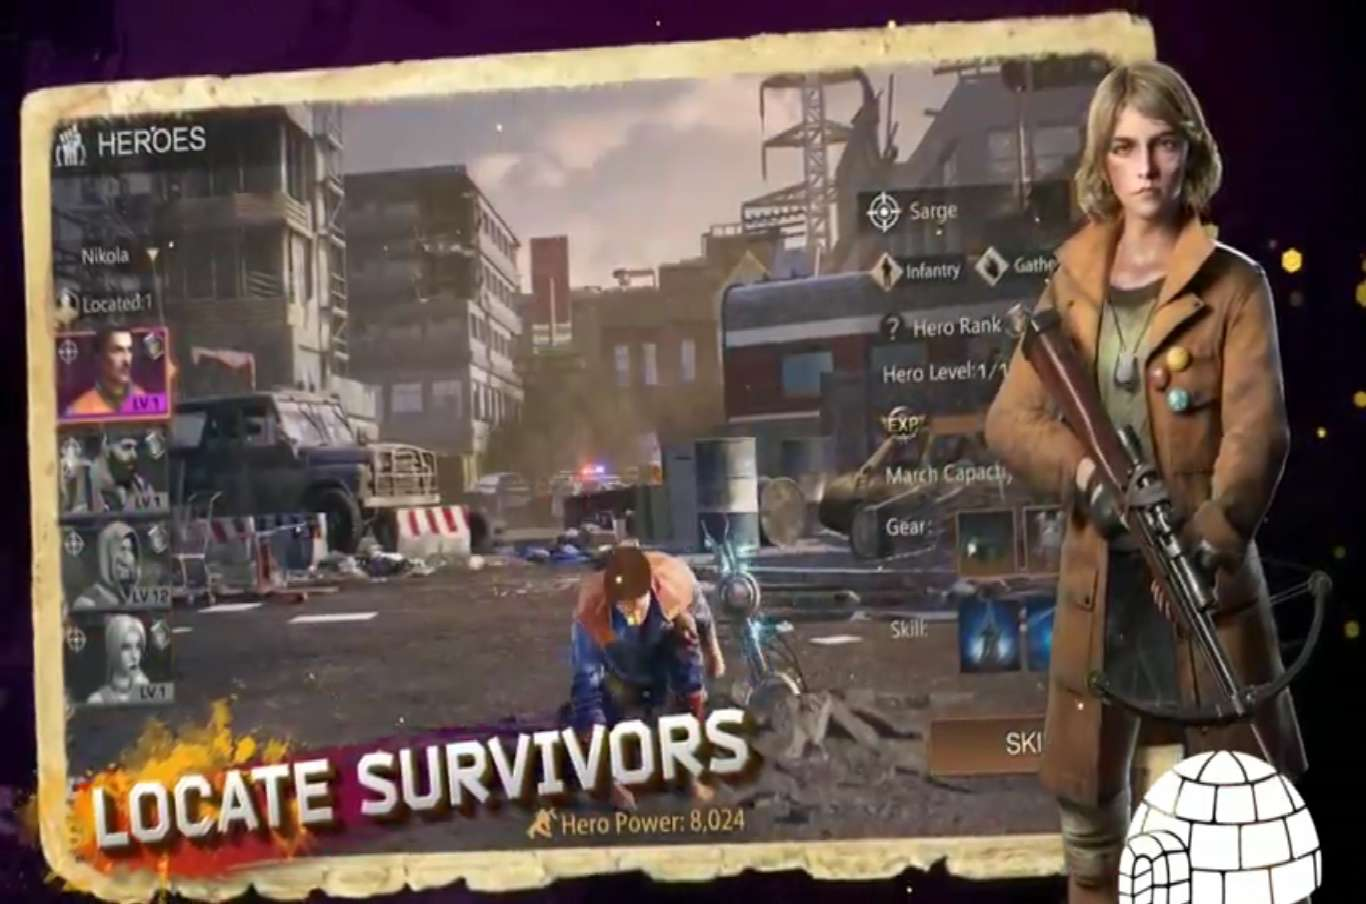 State of Survival Survive The Zombie Apocalypse Updates The Game To Version 1.7.30 And Themed Events And Skins